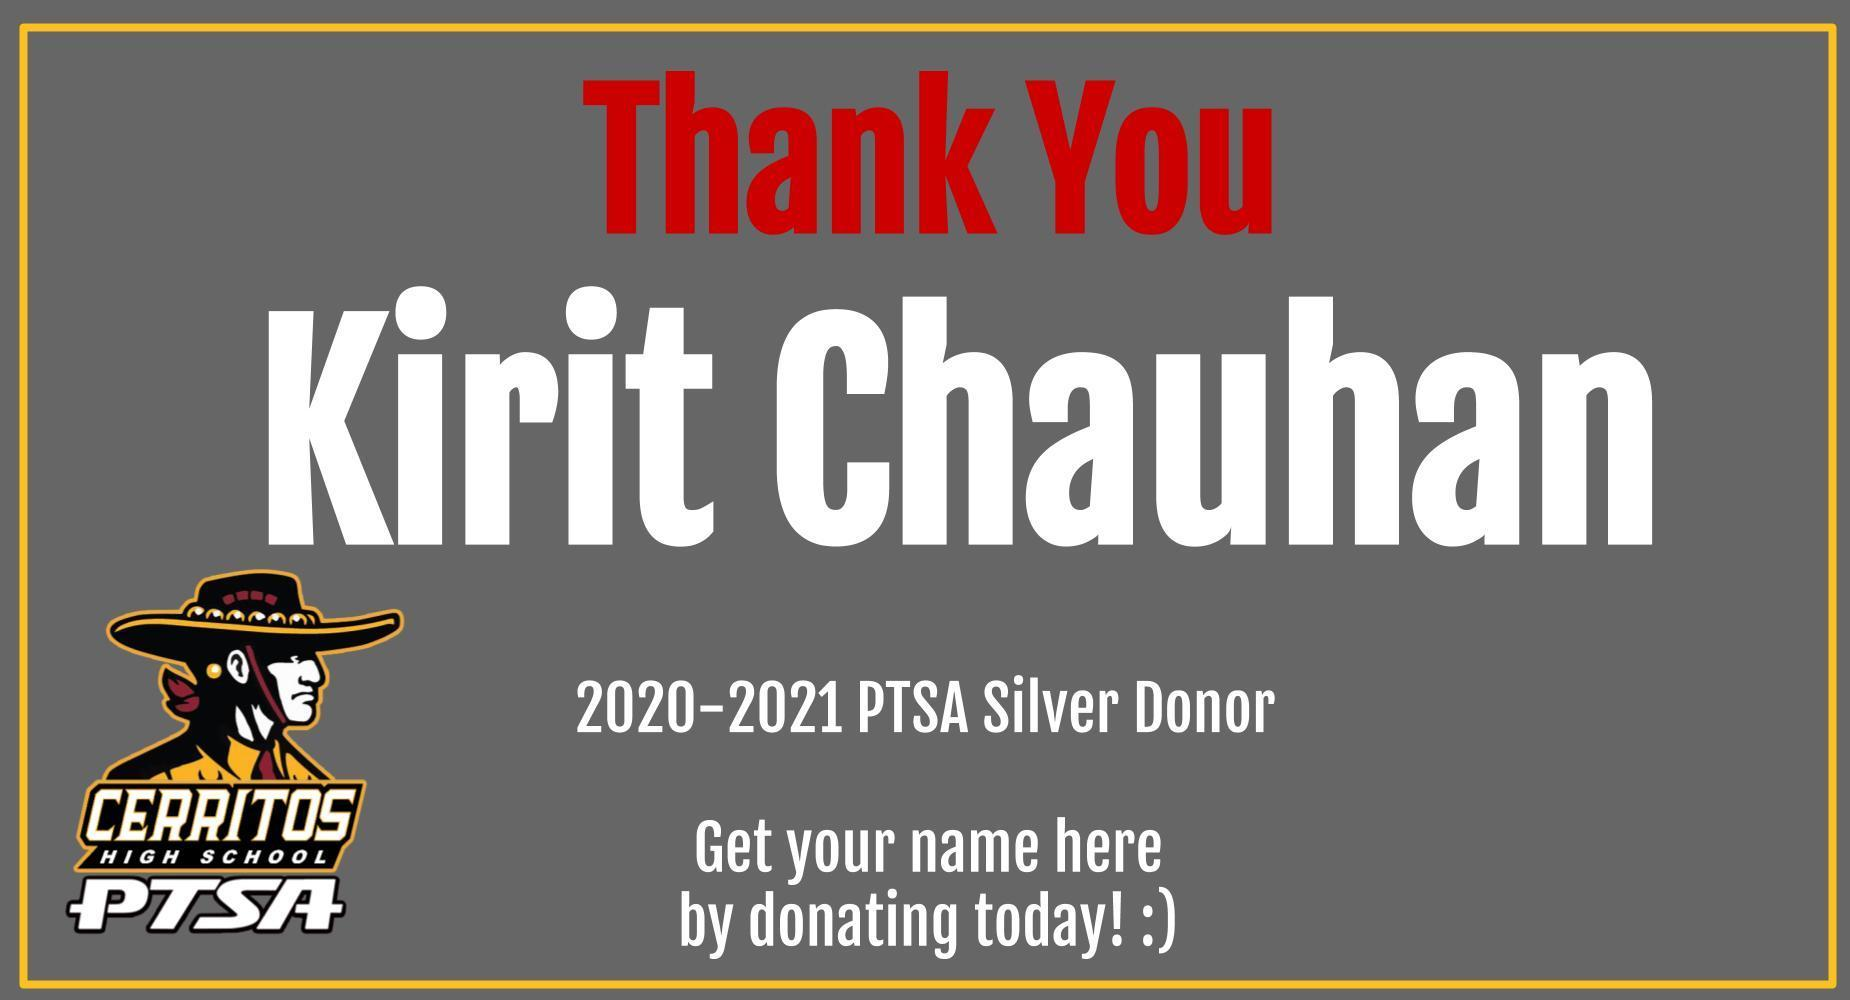 Thank You Kirit Chauhan PTSA Donor